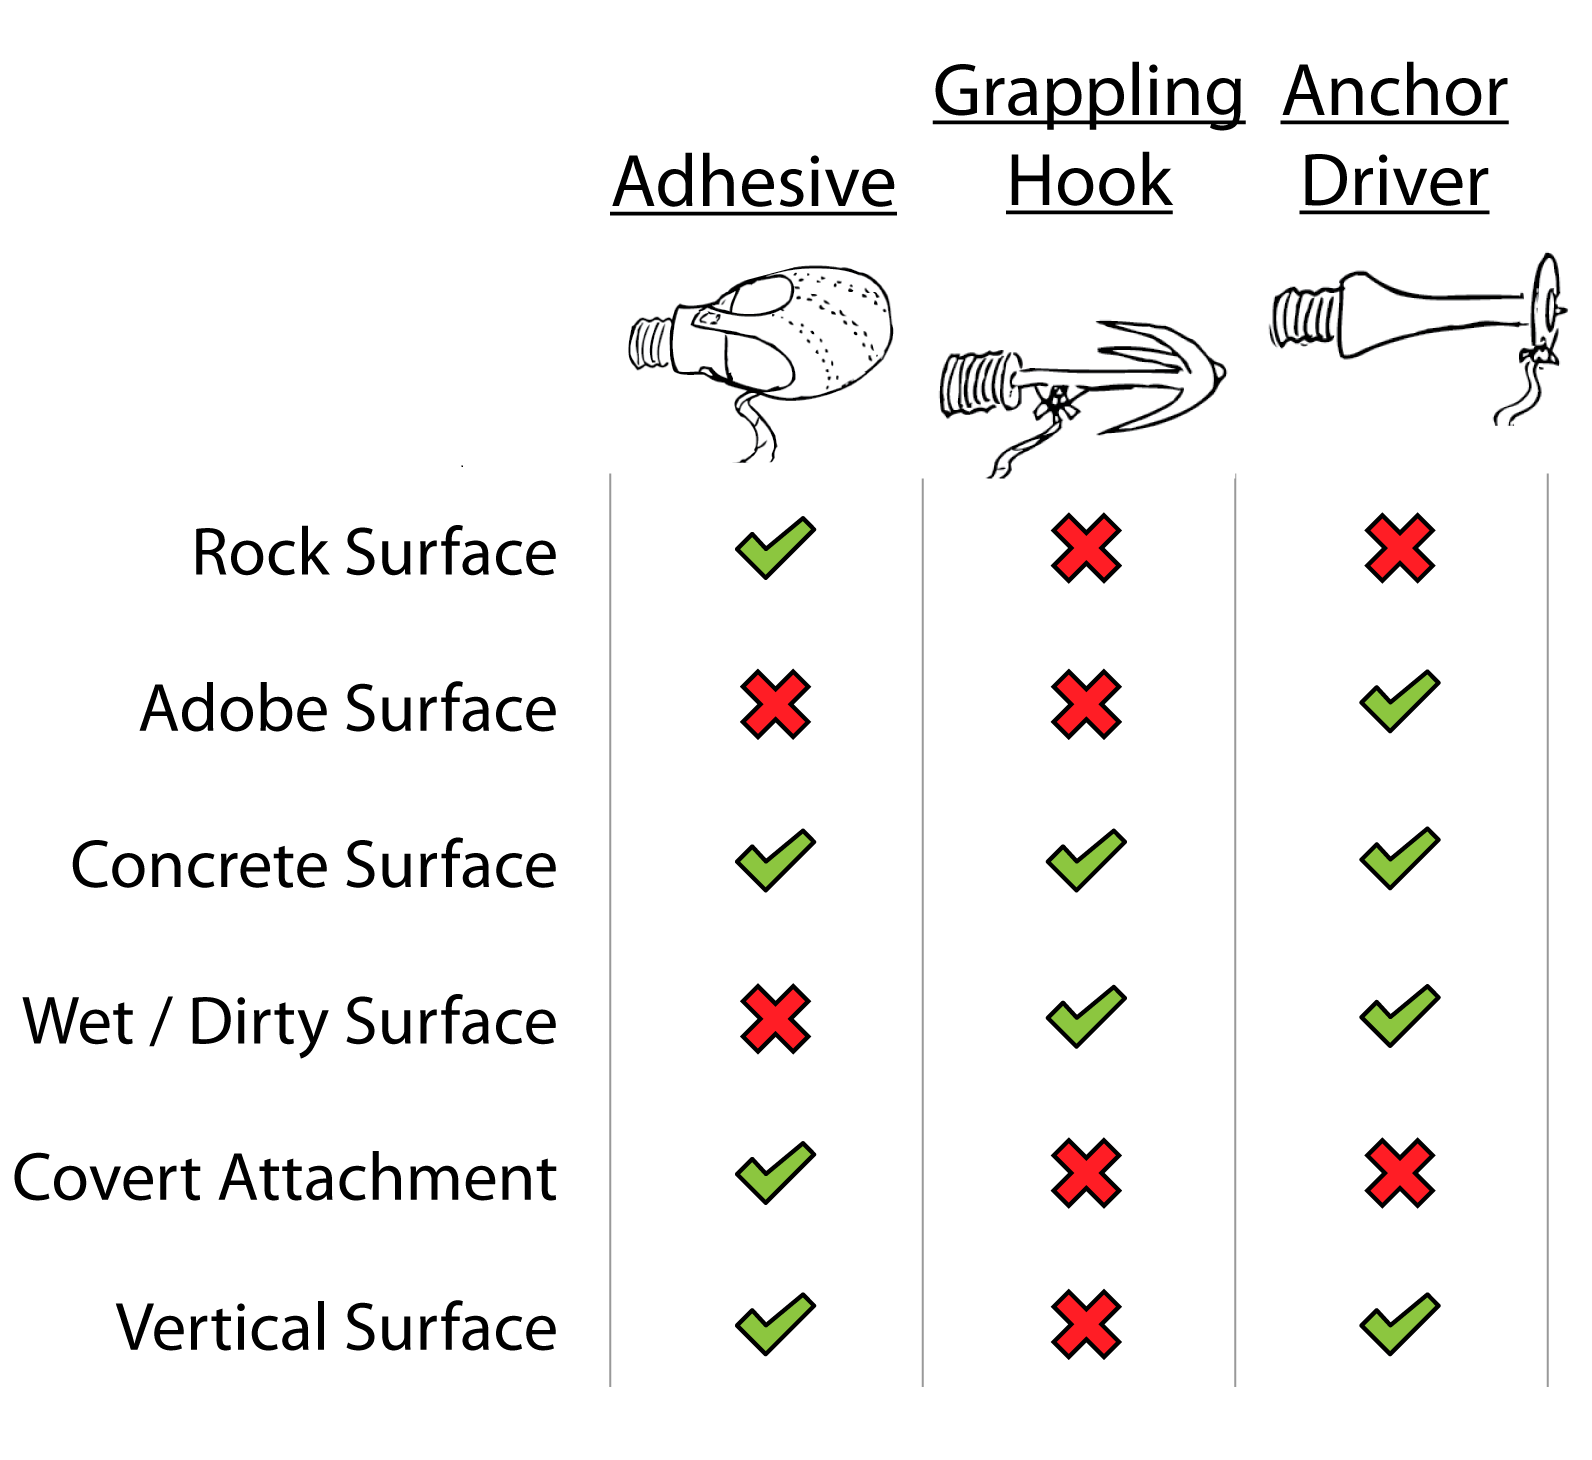 Comparison table between different wall attachment approaches